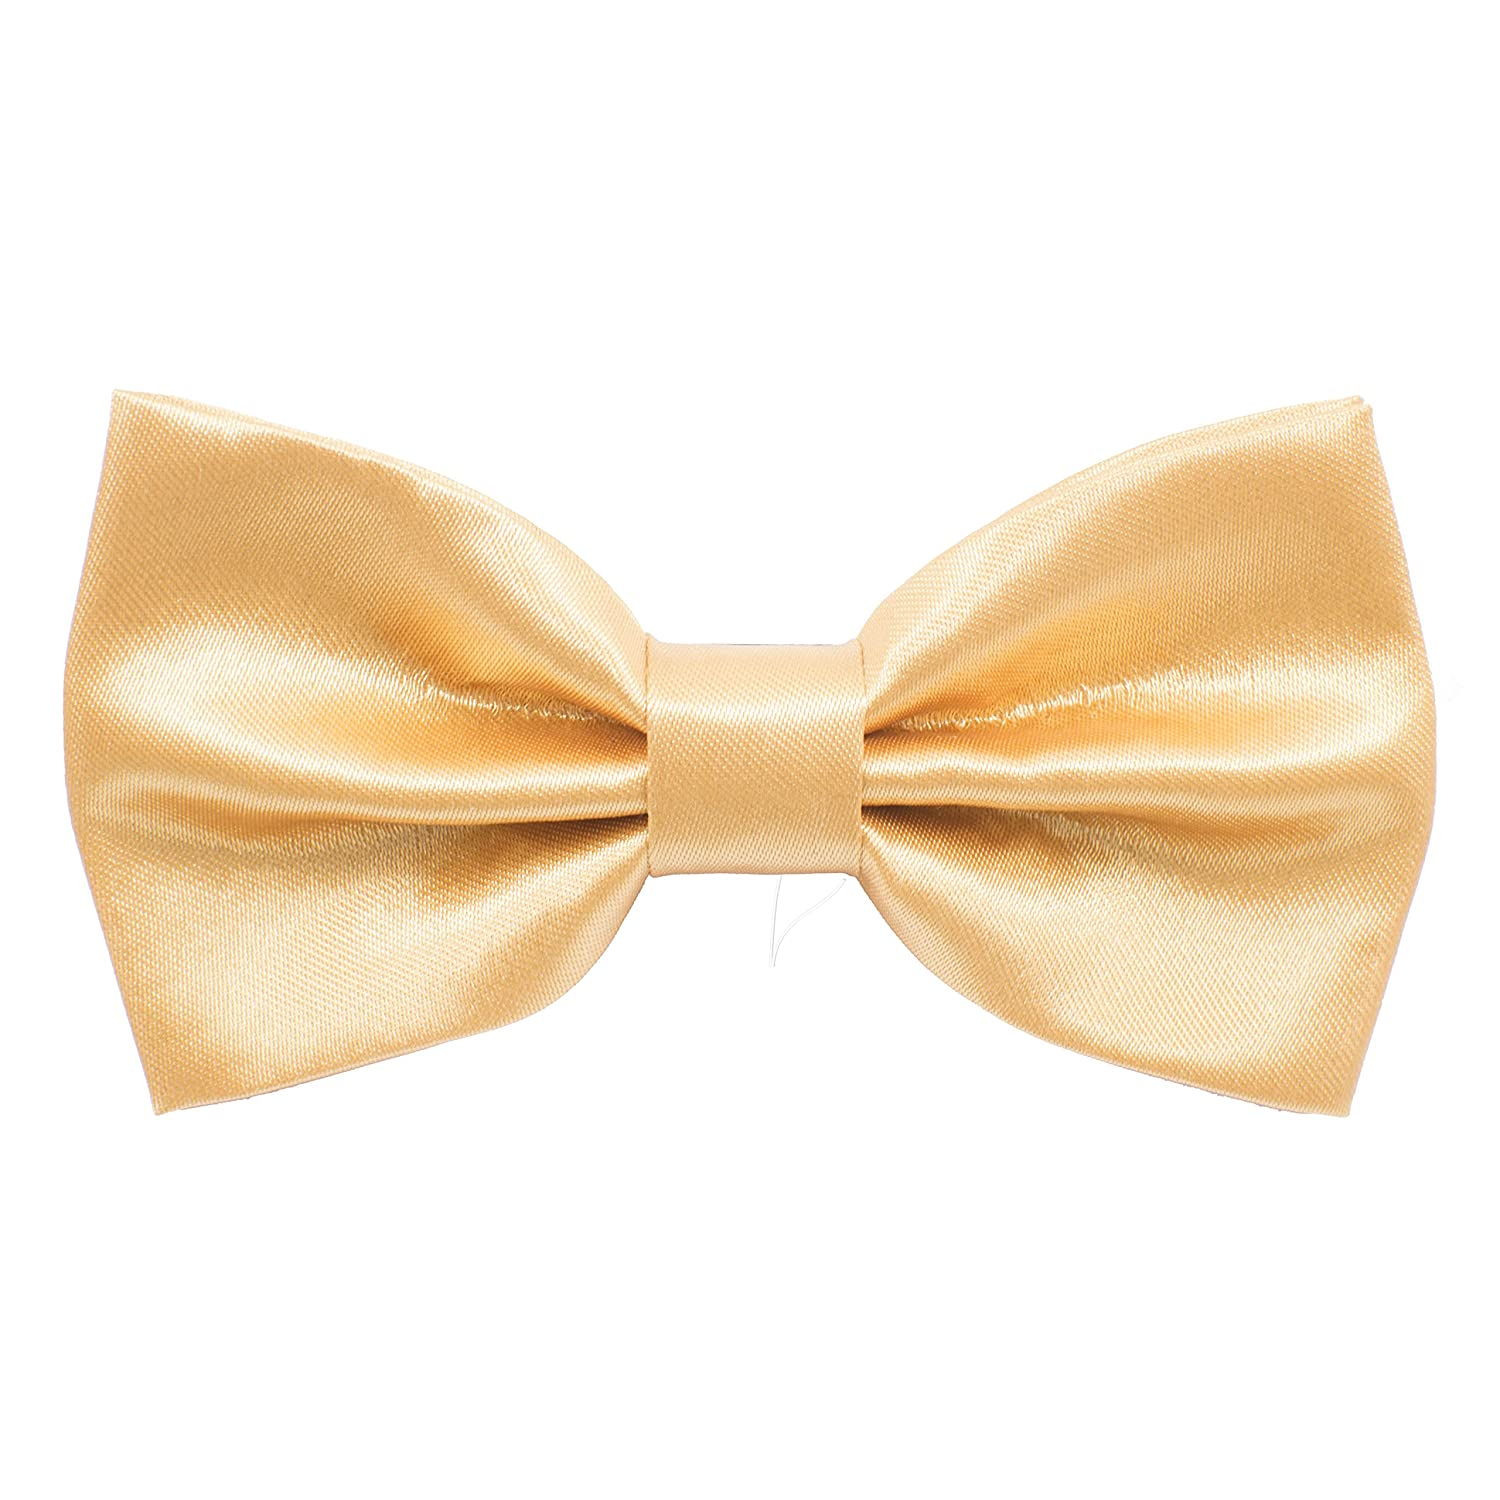 Satin Classic Pre-Tied Bow Tie Formal Solid Tuxedo for Adults & Children, by Bow Tie House 09565L